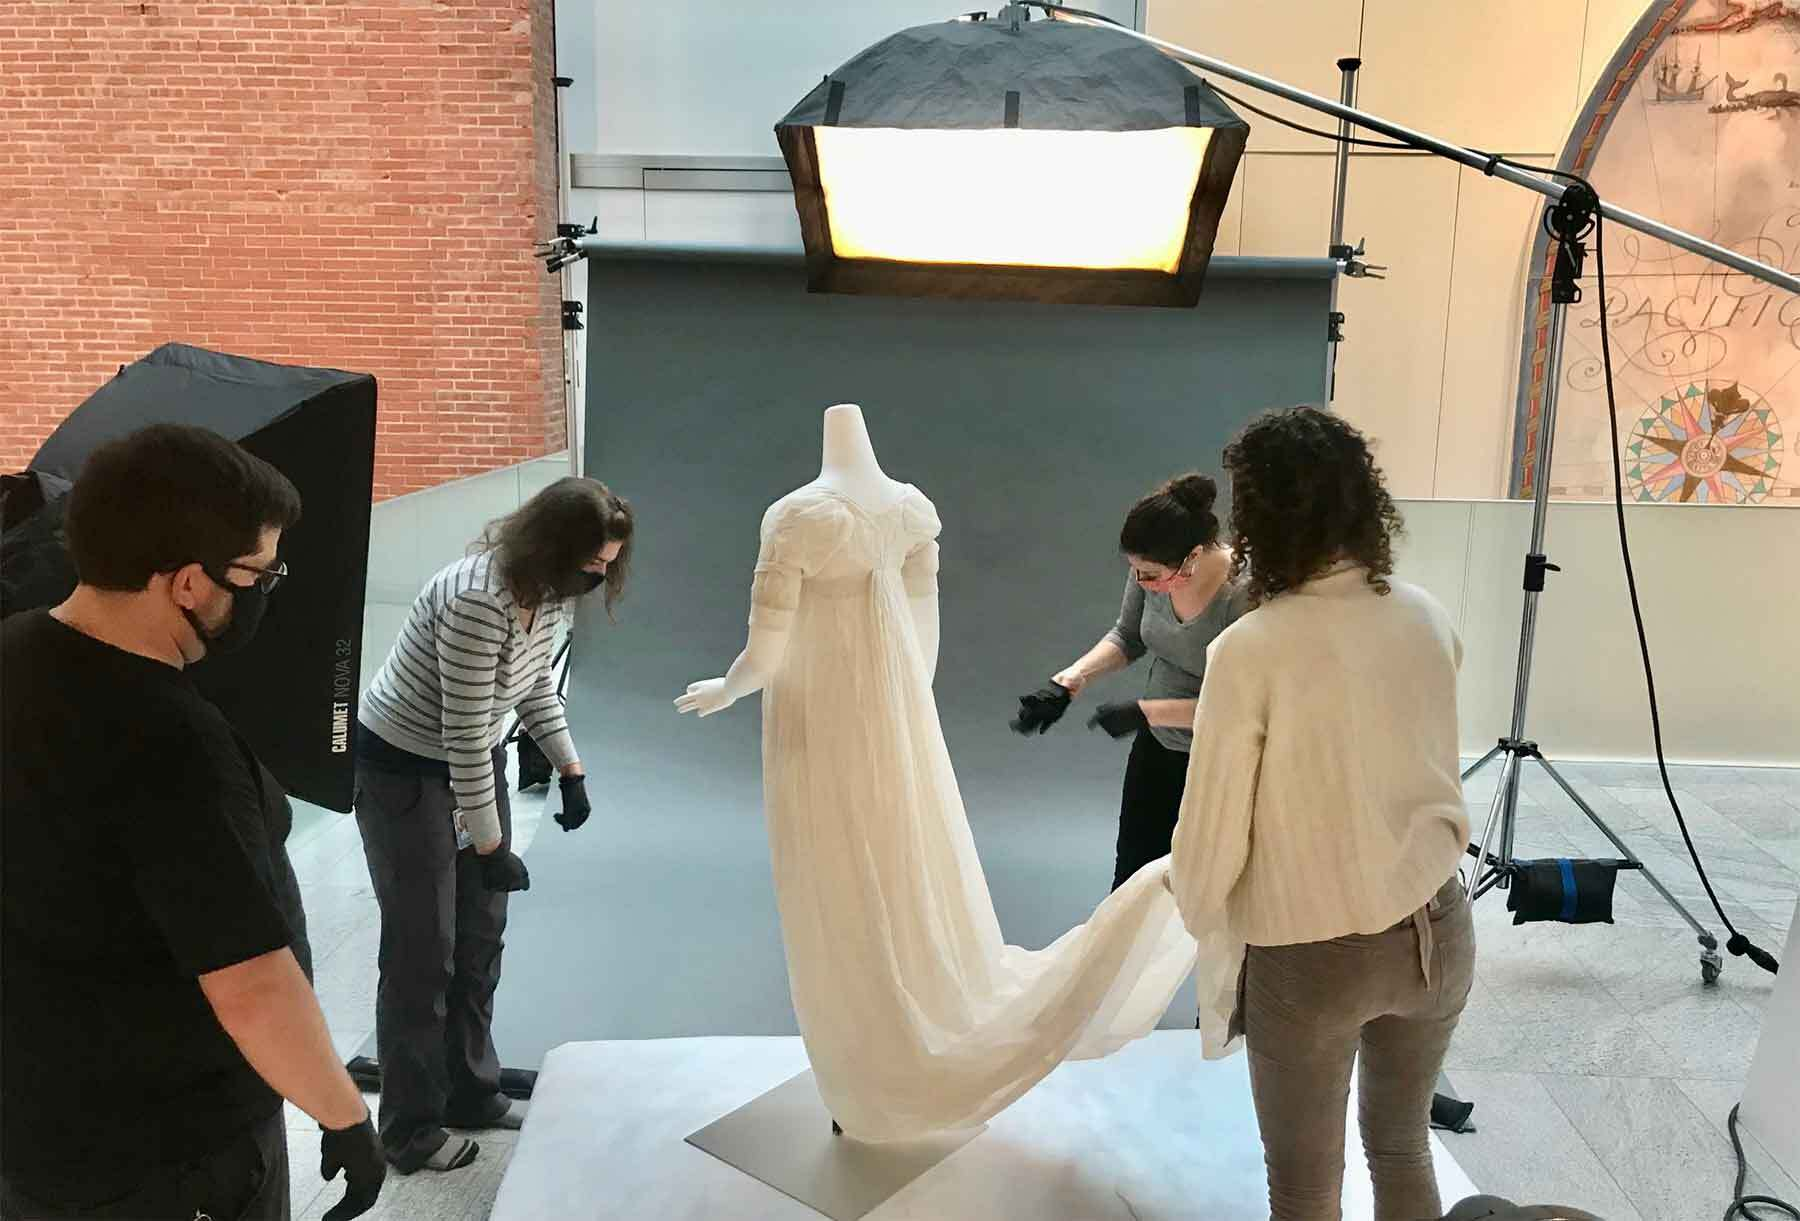 Conservators and preparators prepare a new muslin dress to be installed in the gallery.